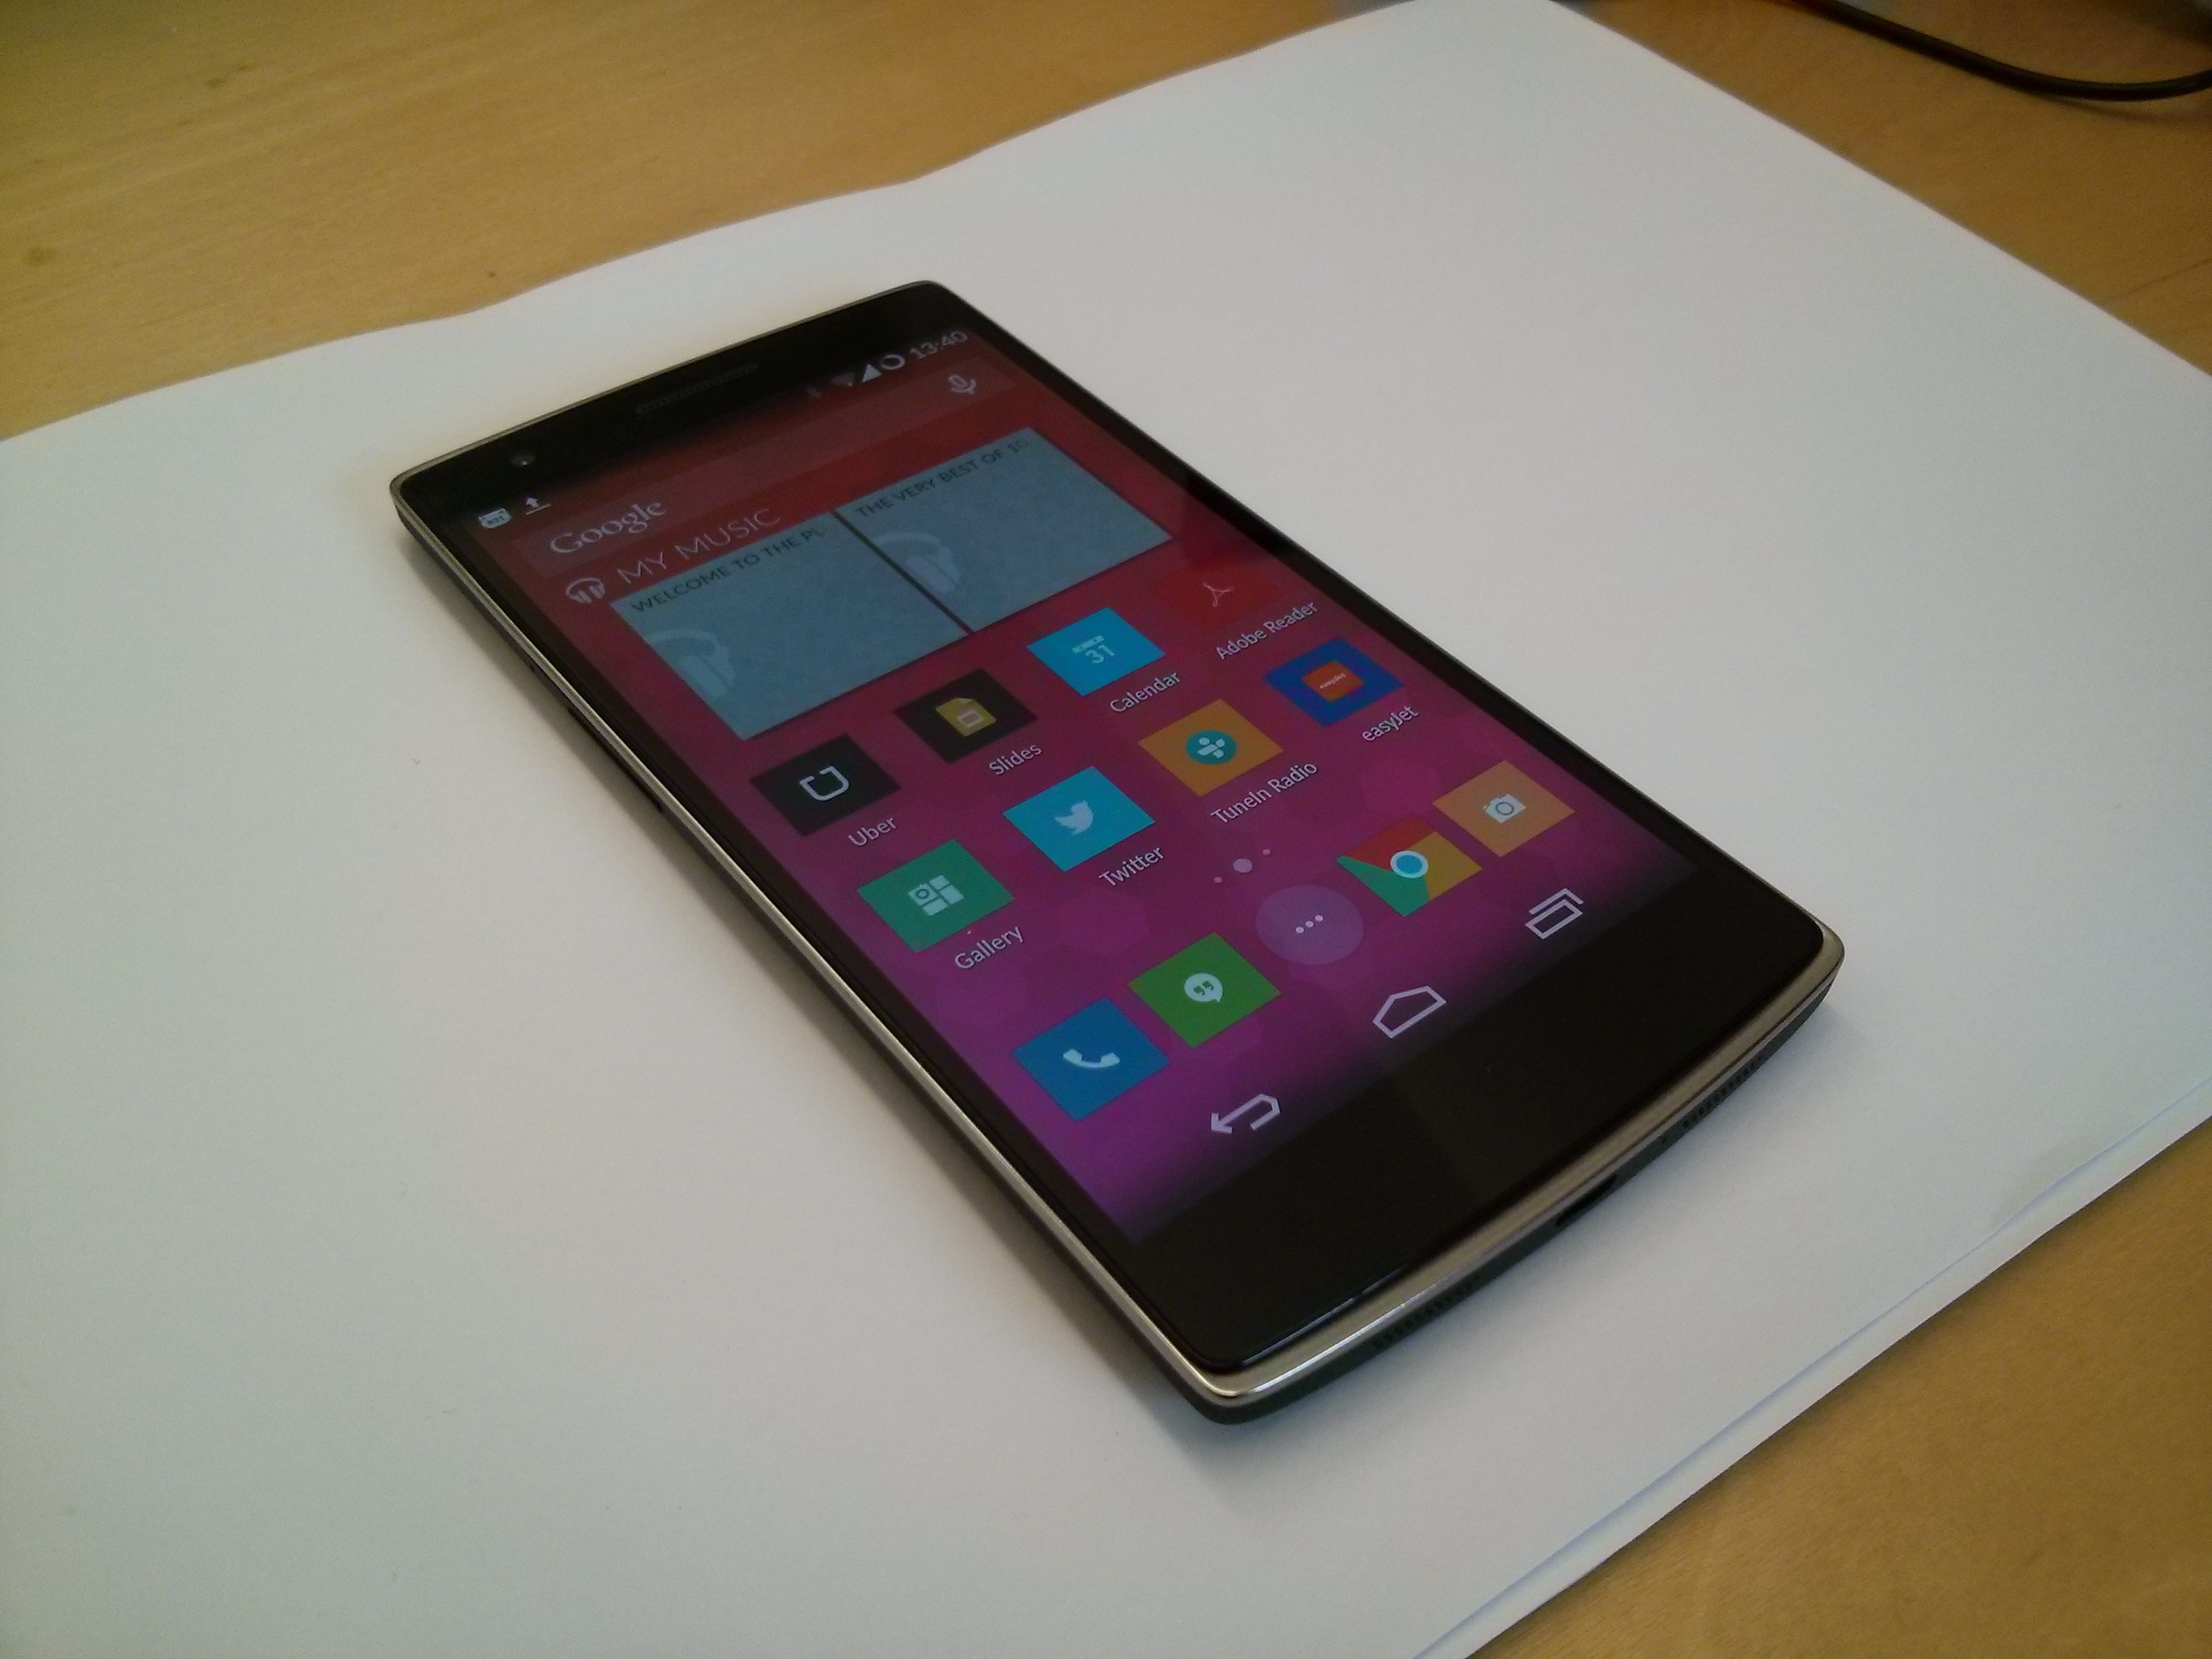 oneplus one cyanogenmod UK